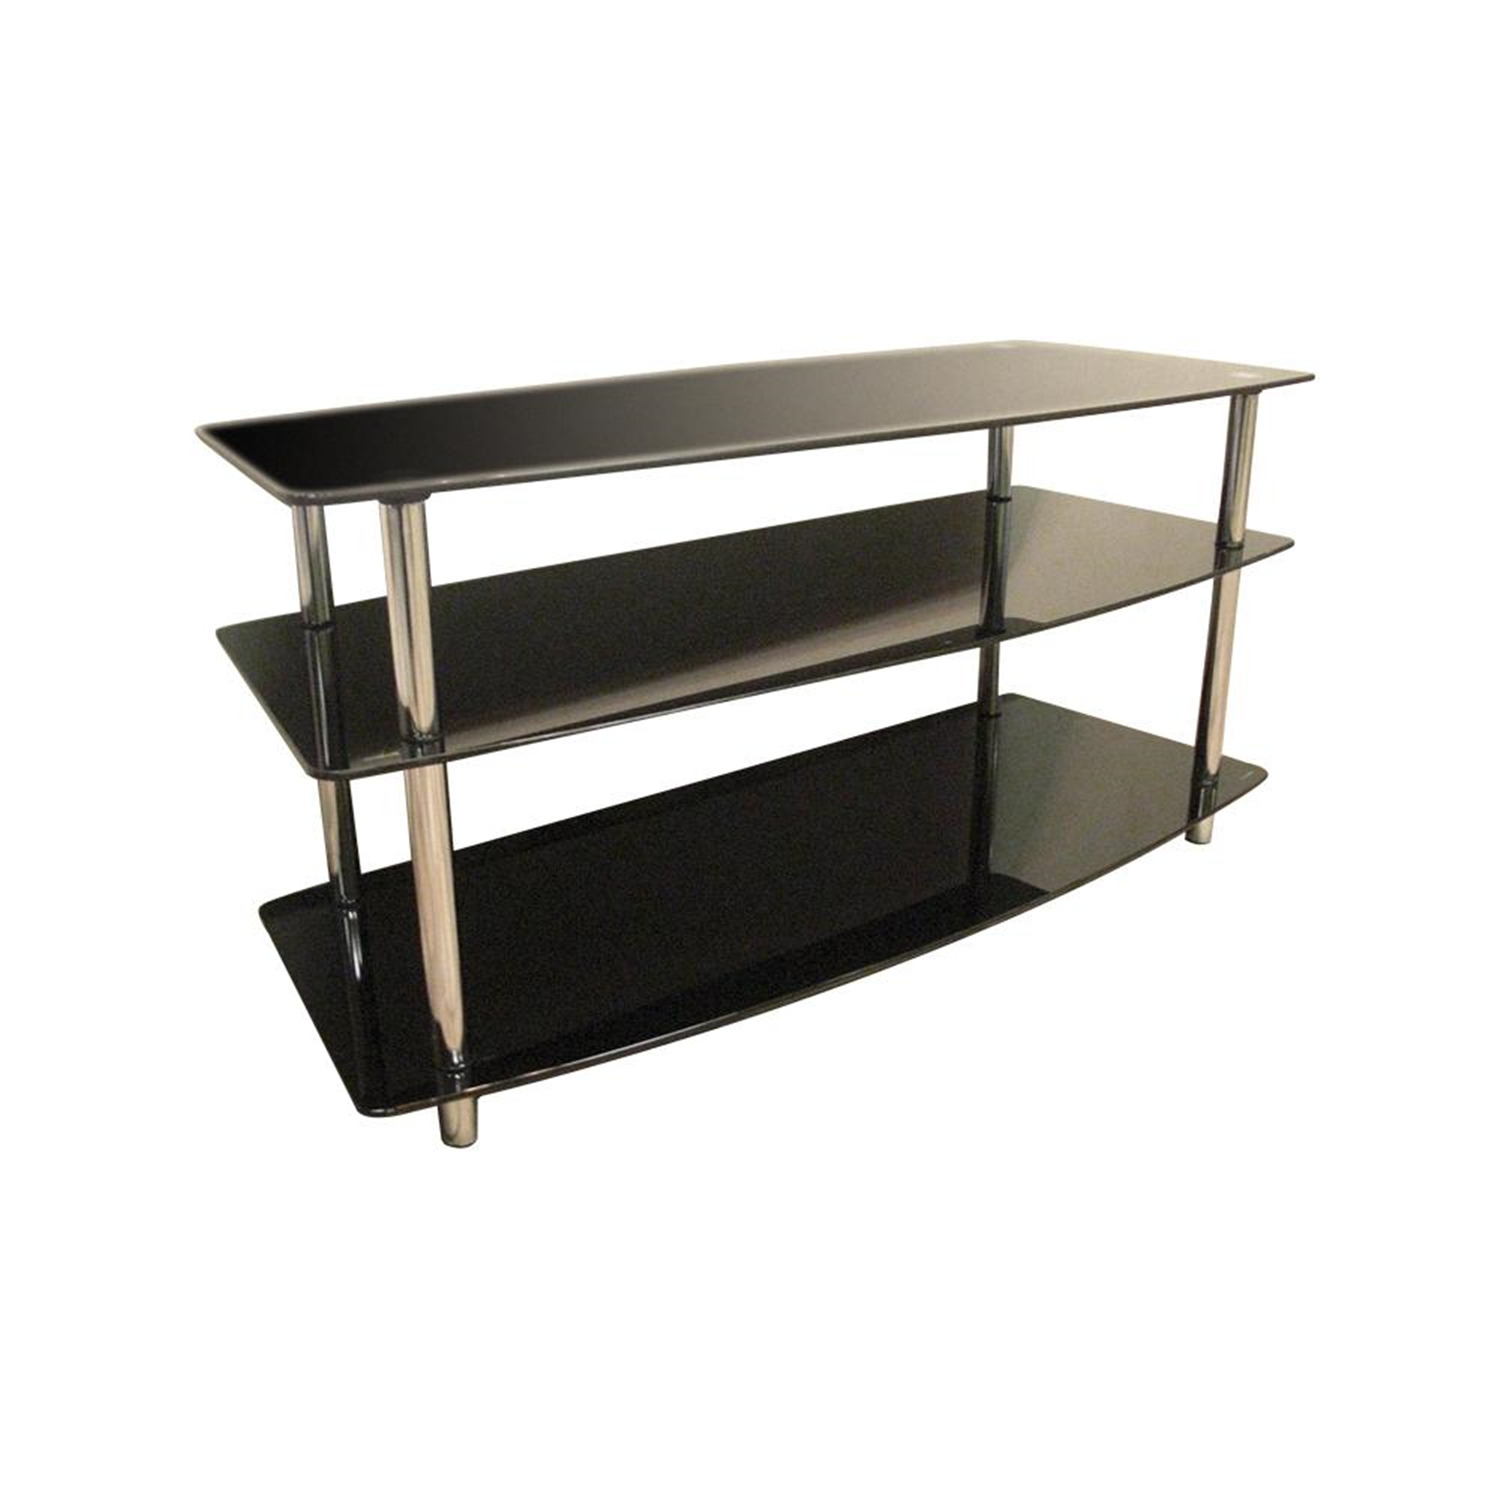 Home Source Black Glass Tv Stand by OJ Commerce DR-8145 - $169.50